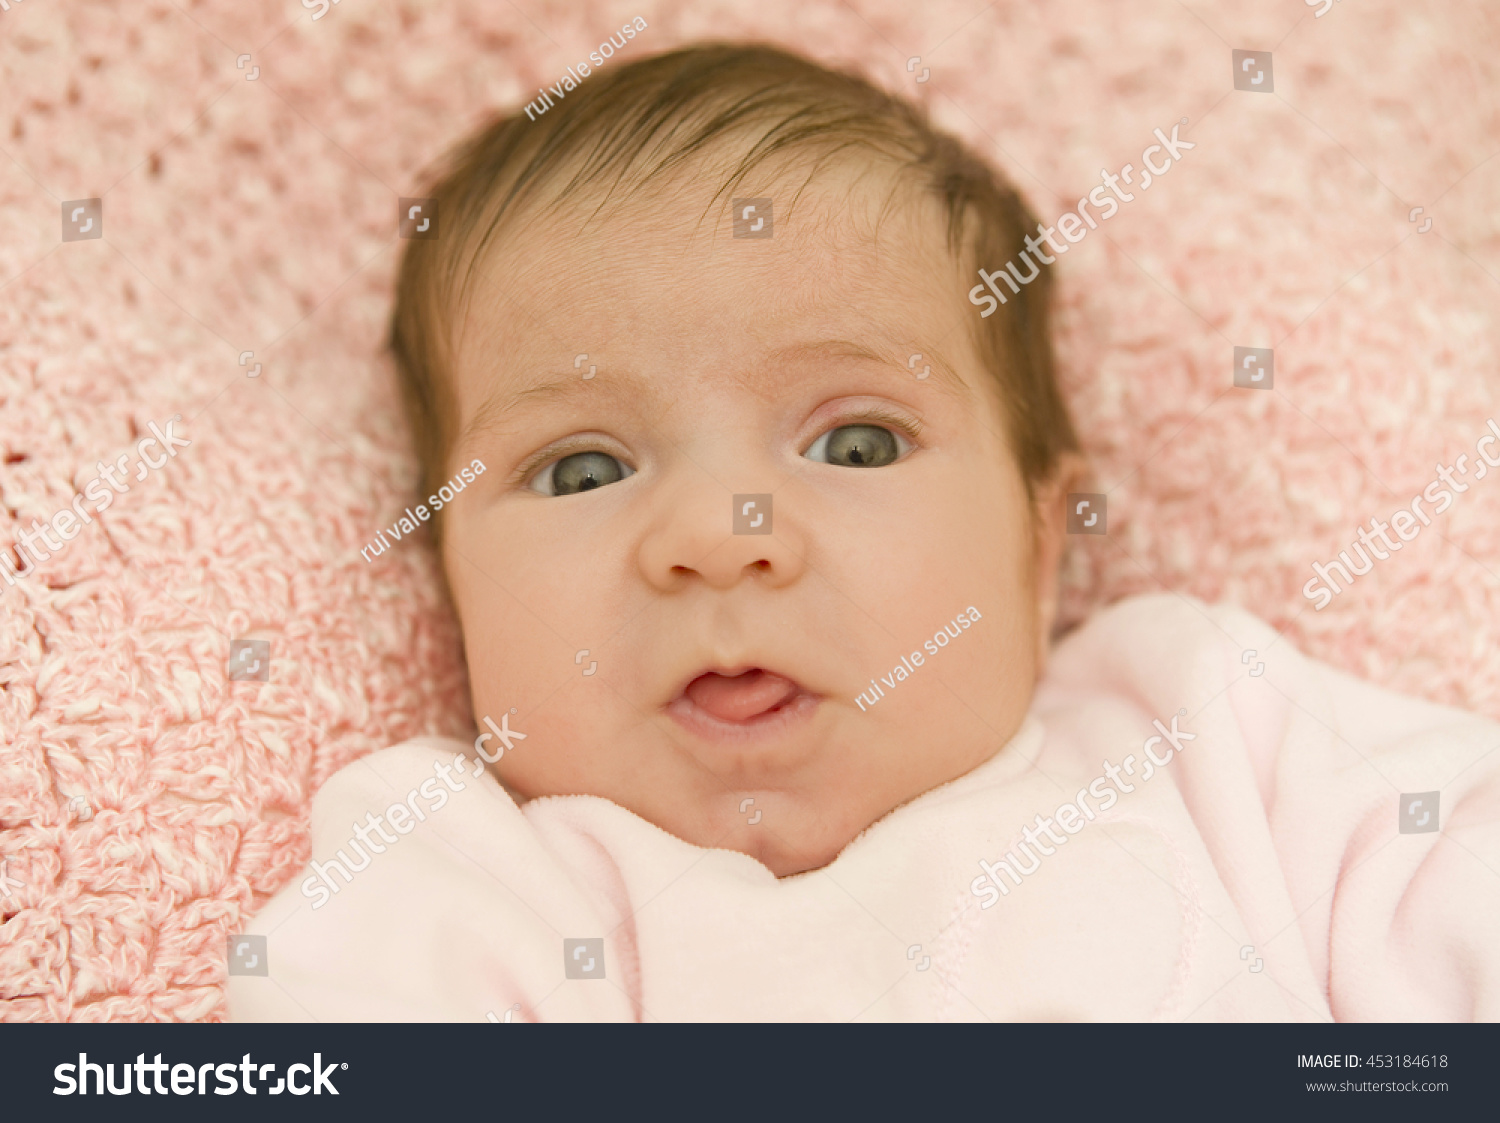 Young baby portrait studio picture